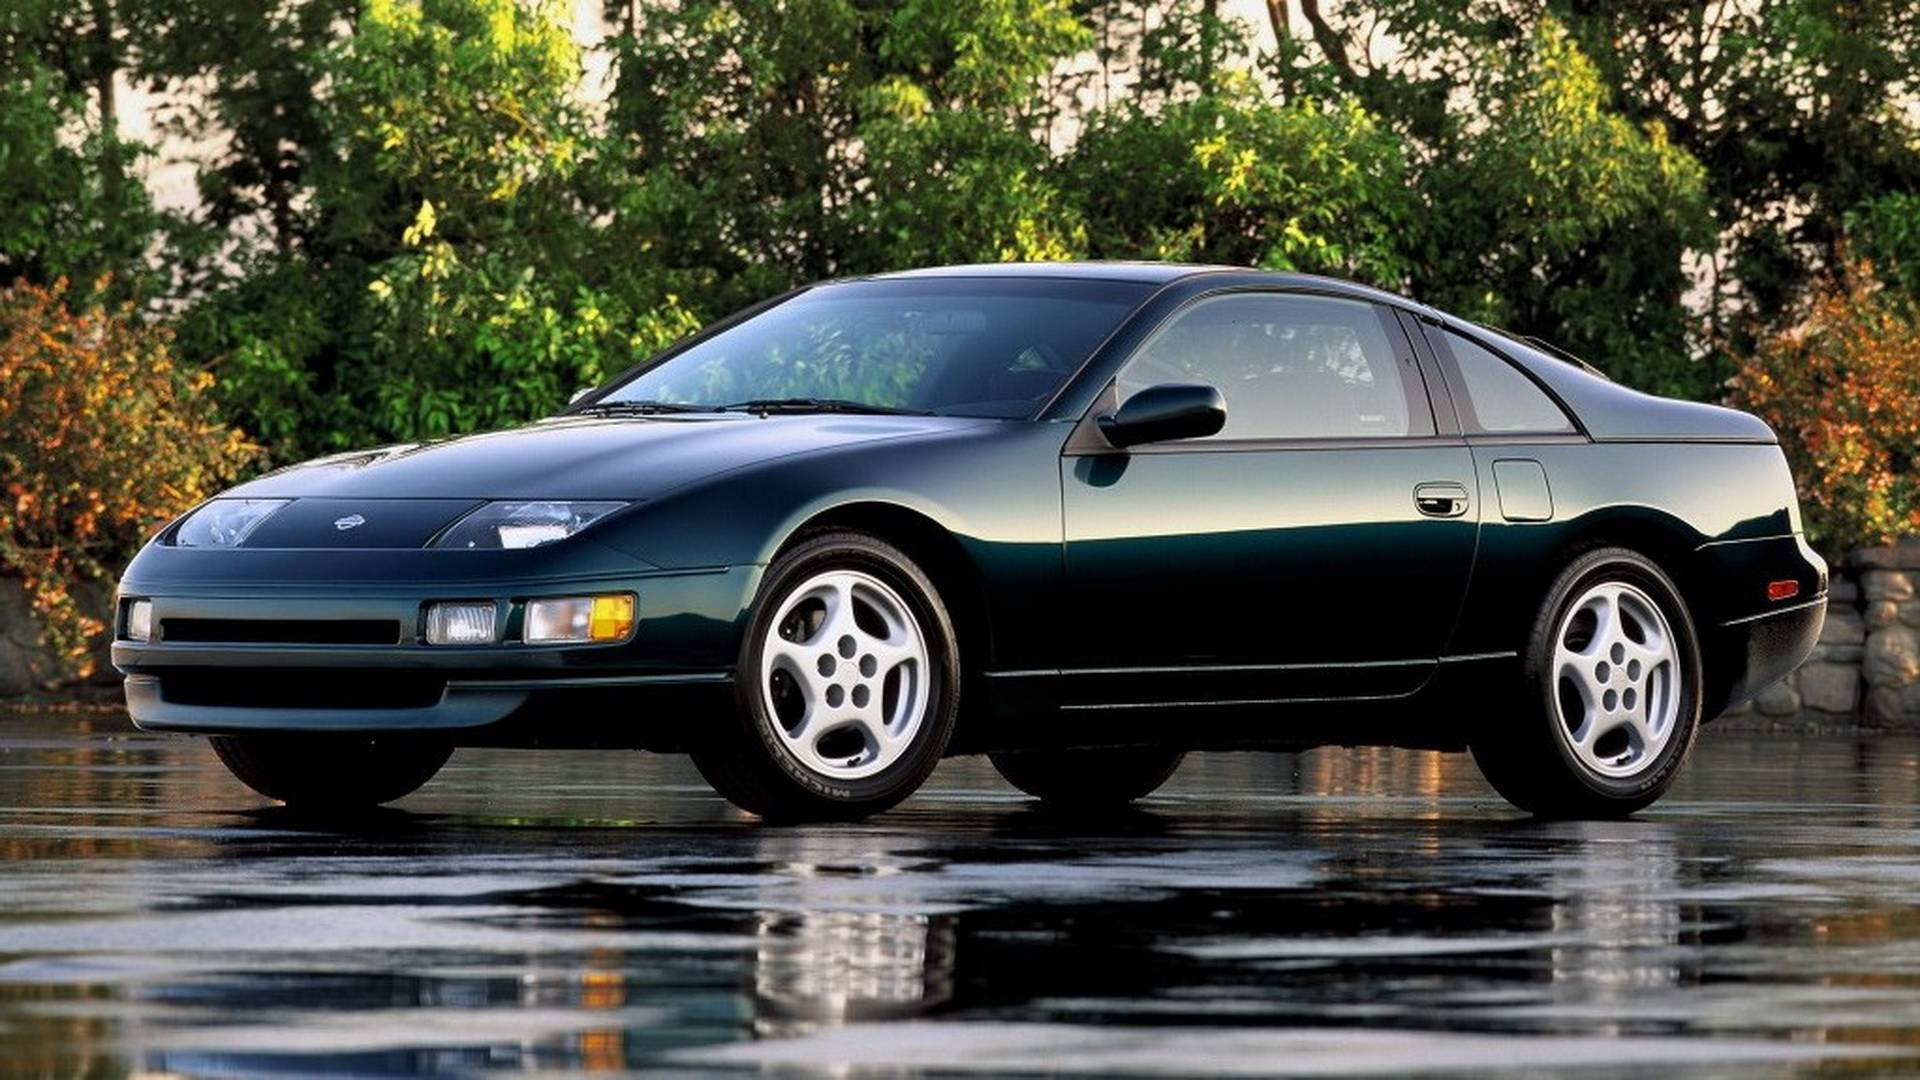 The Coolest Cars You Can Buy For 5000